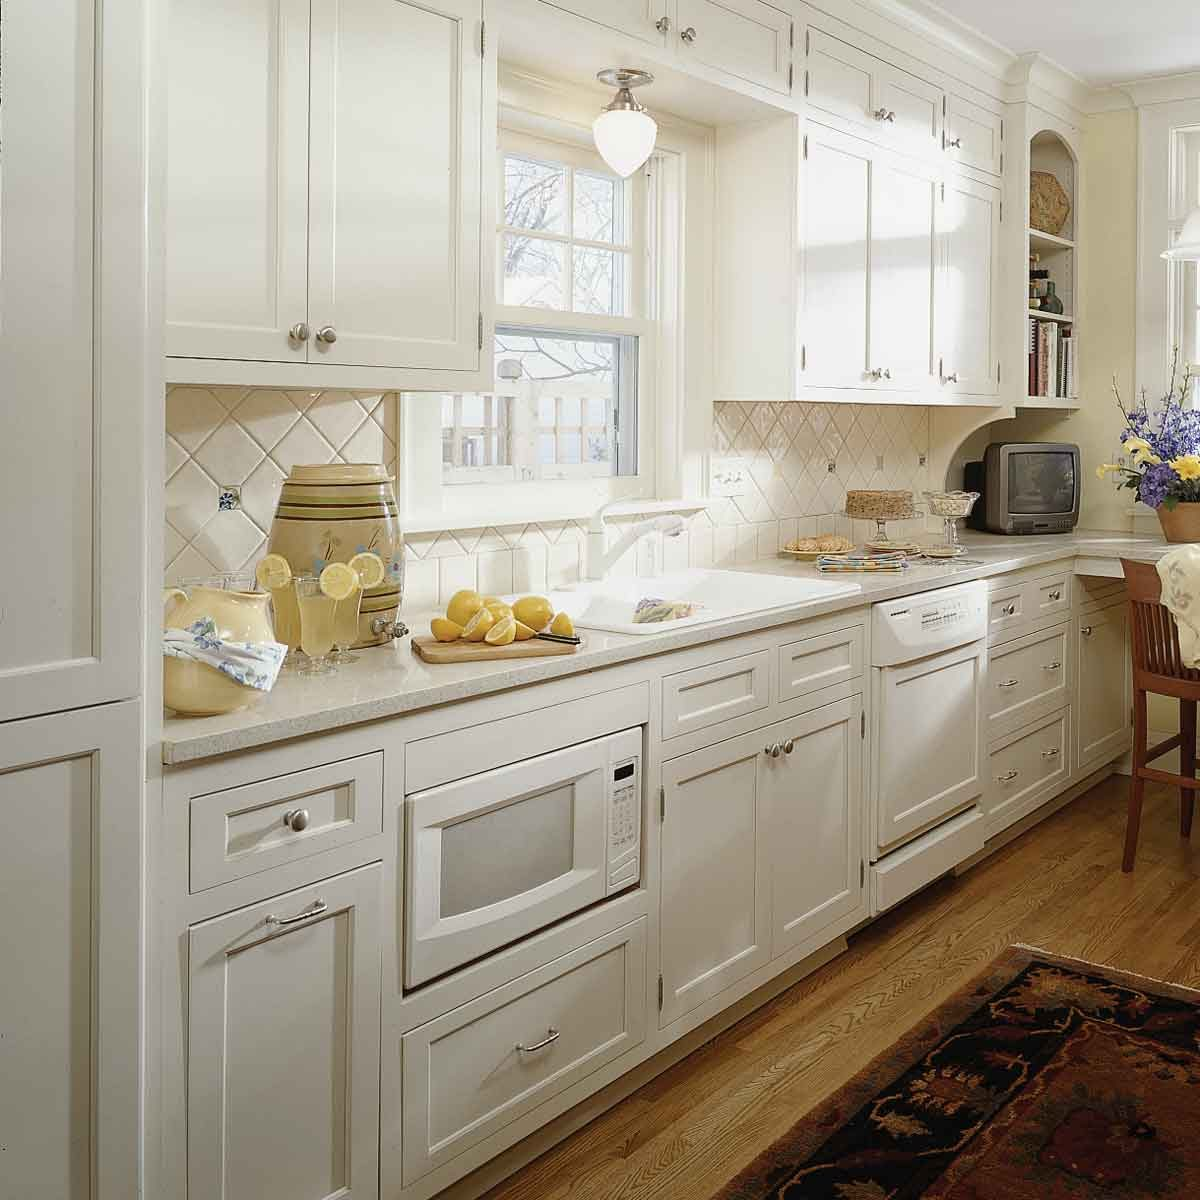 10 Small Kitchen Ideas to Maximize Space! | The Family ... on Small Kitchen Ideas  id=97495